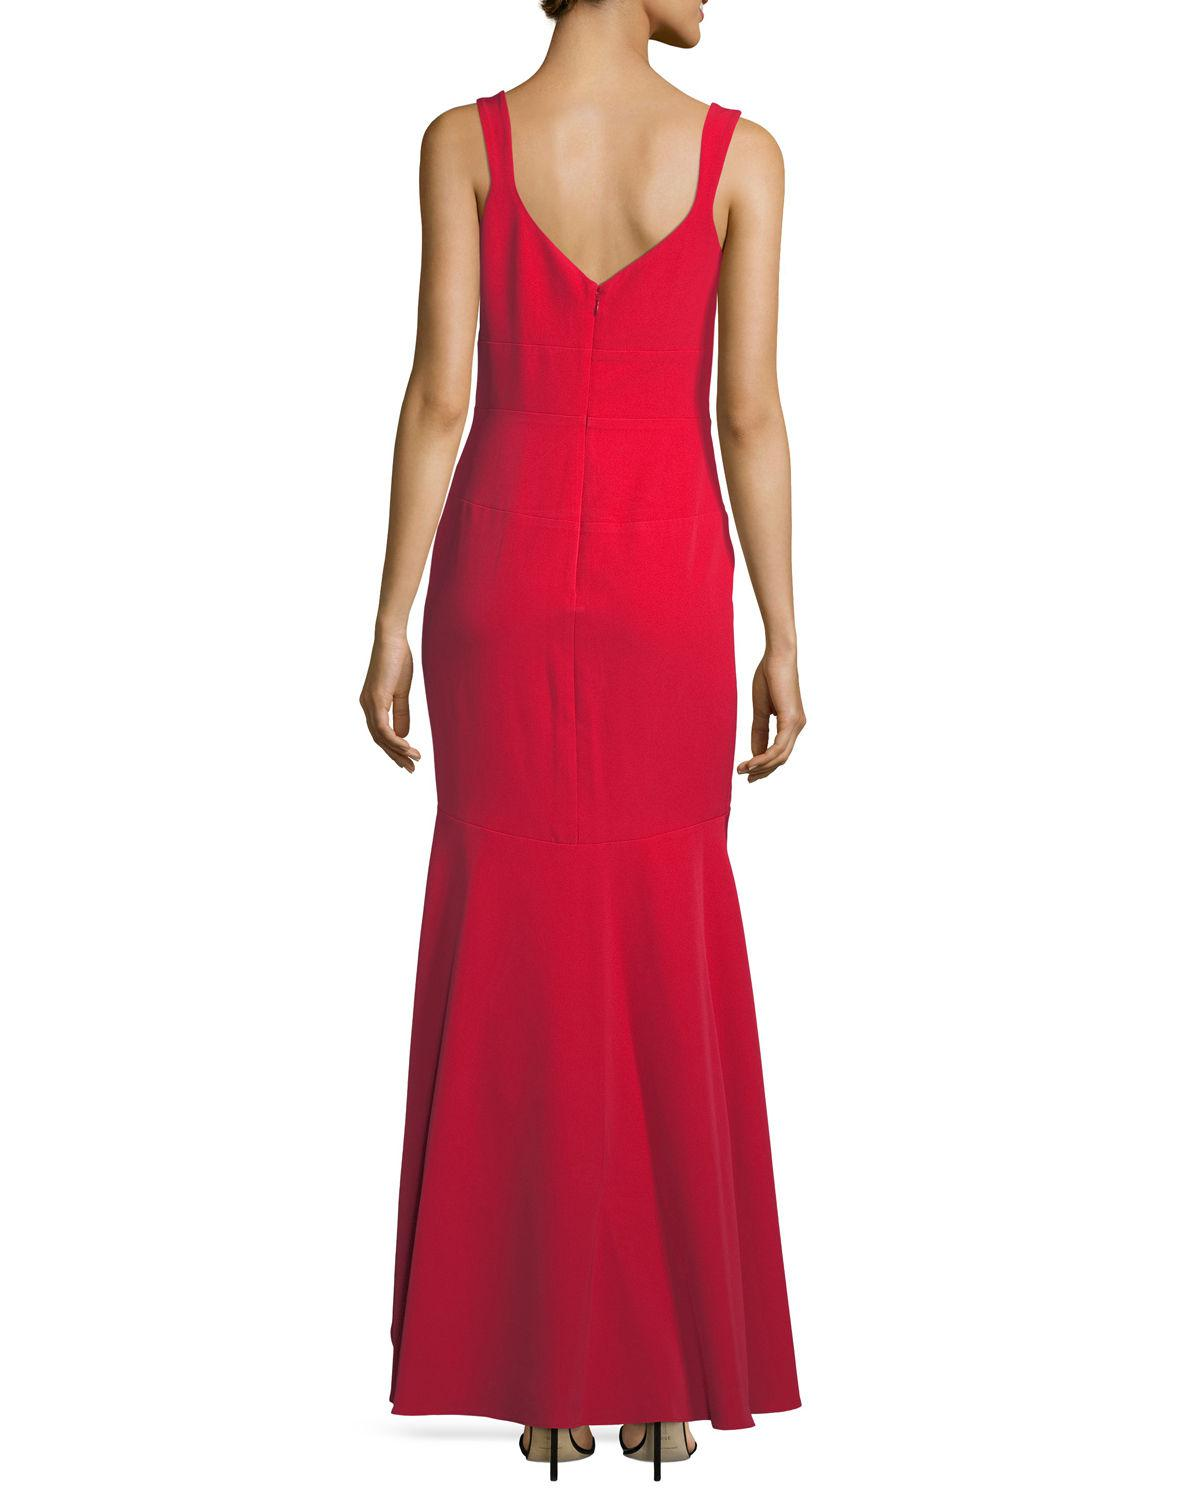 Lyst - Nicole Miller High-low Trumpet Evening Gown in Blue